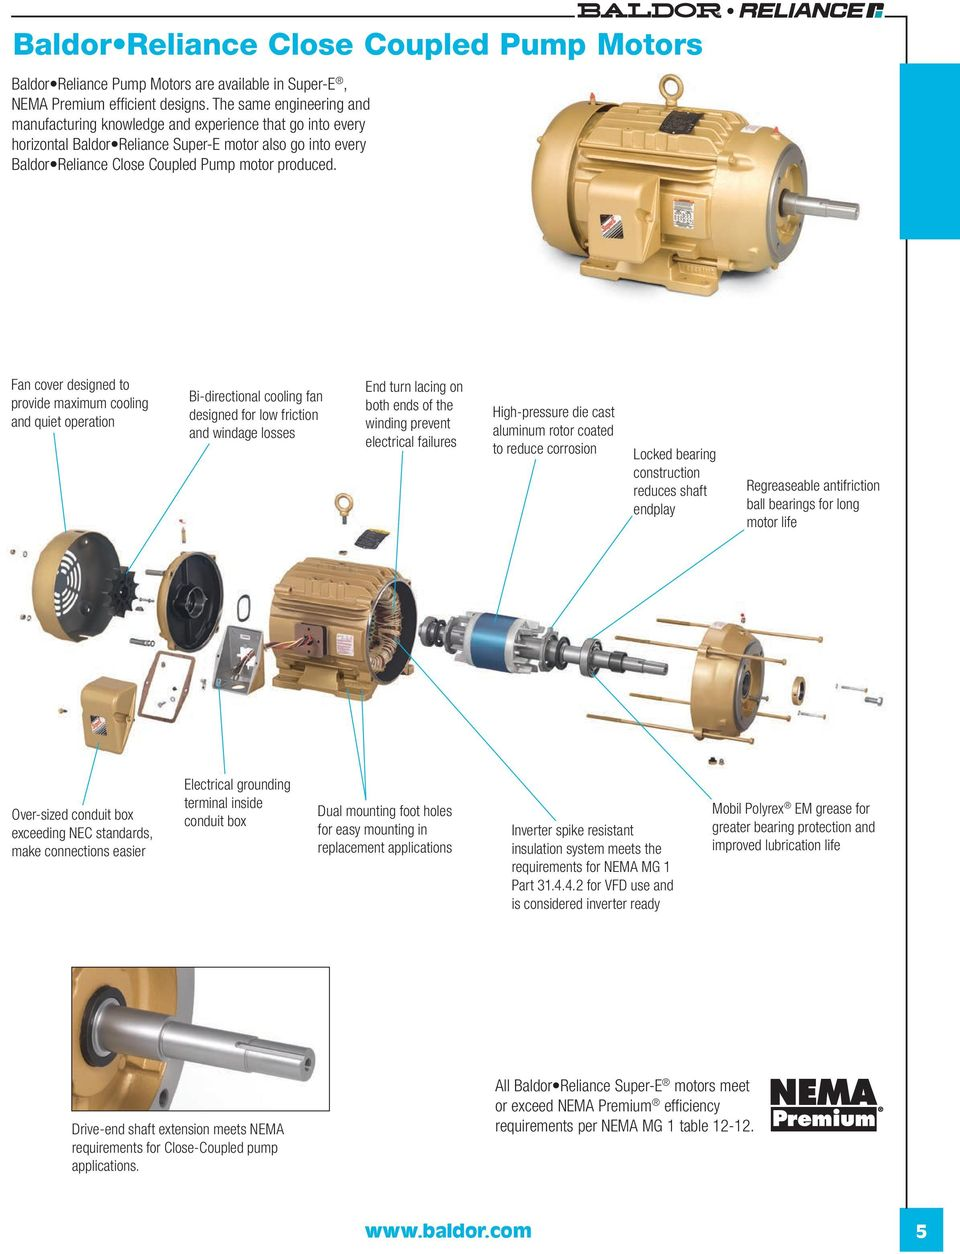 Baldor Fan Motor Diagram Simple Wiring Detailed Phase Ke Repalcement Parts And Why Table Of Contents Pdf